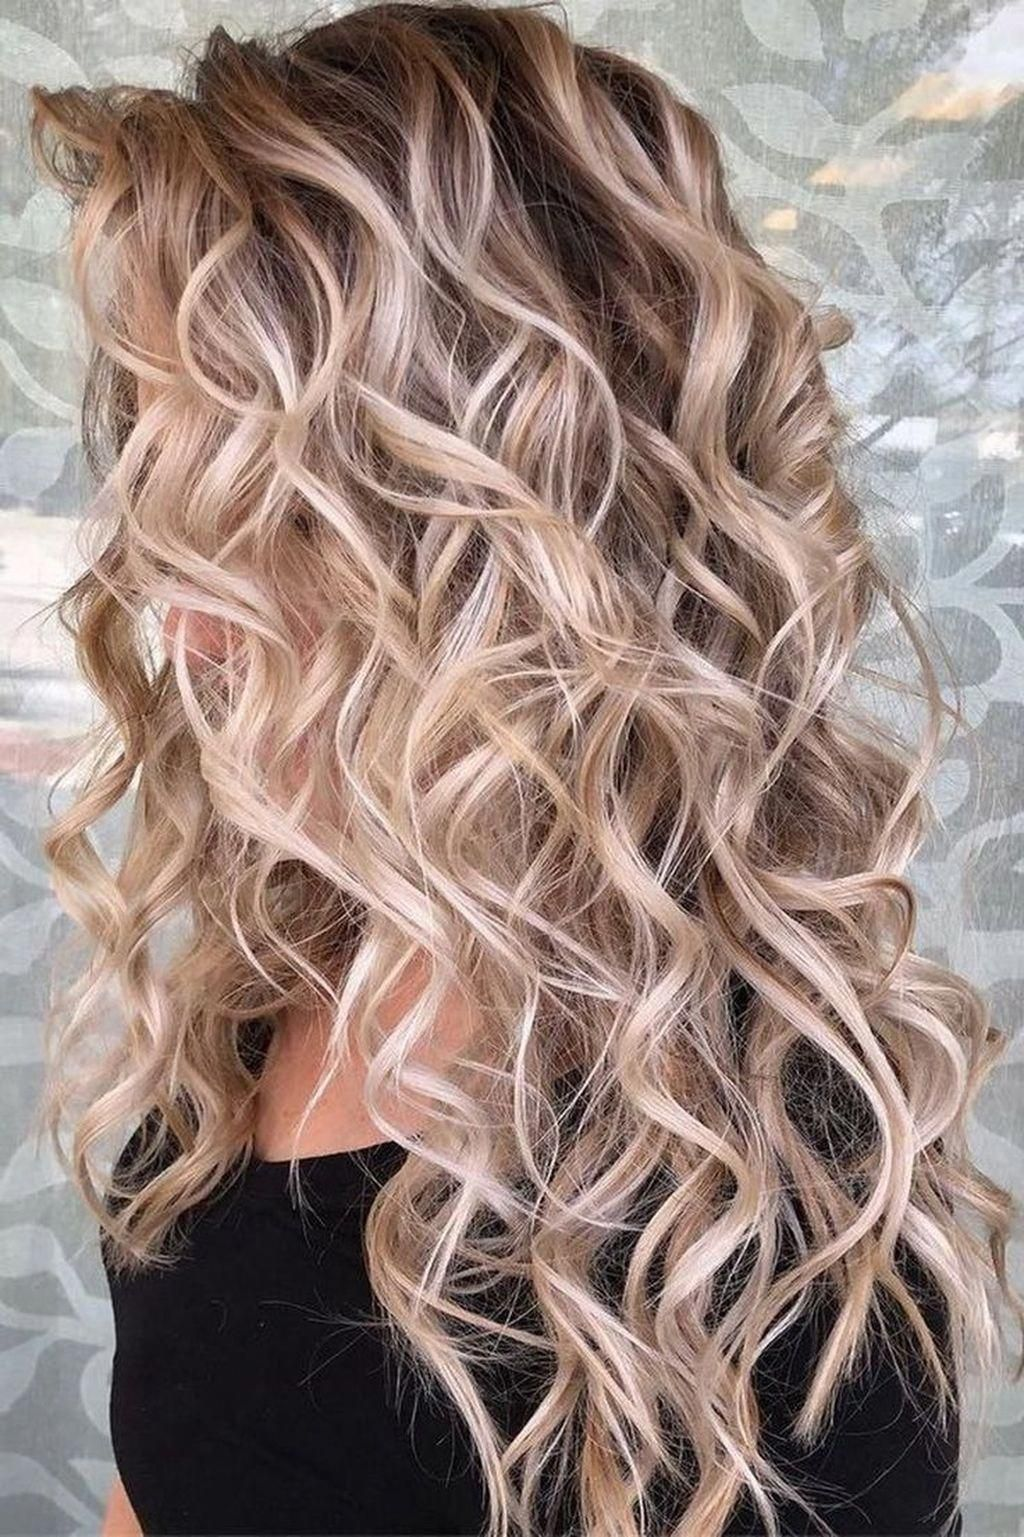 22 Easy Hairstyles for Long Hair (Fast Looks for 2019) in ...